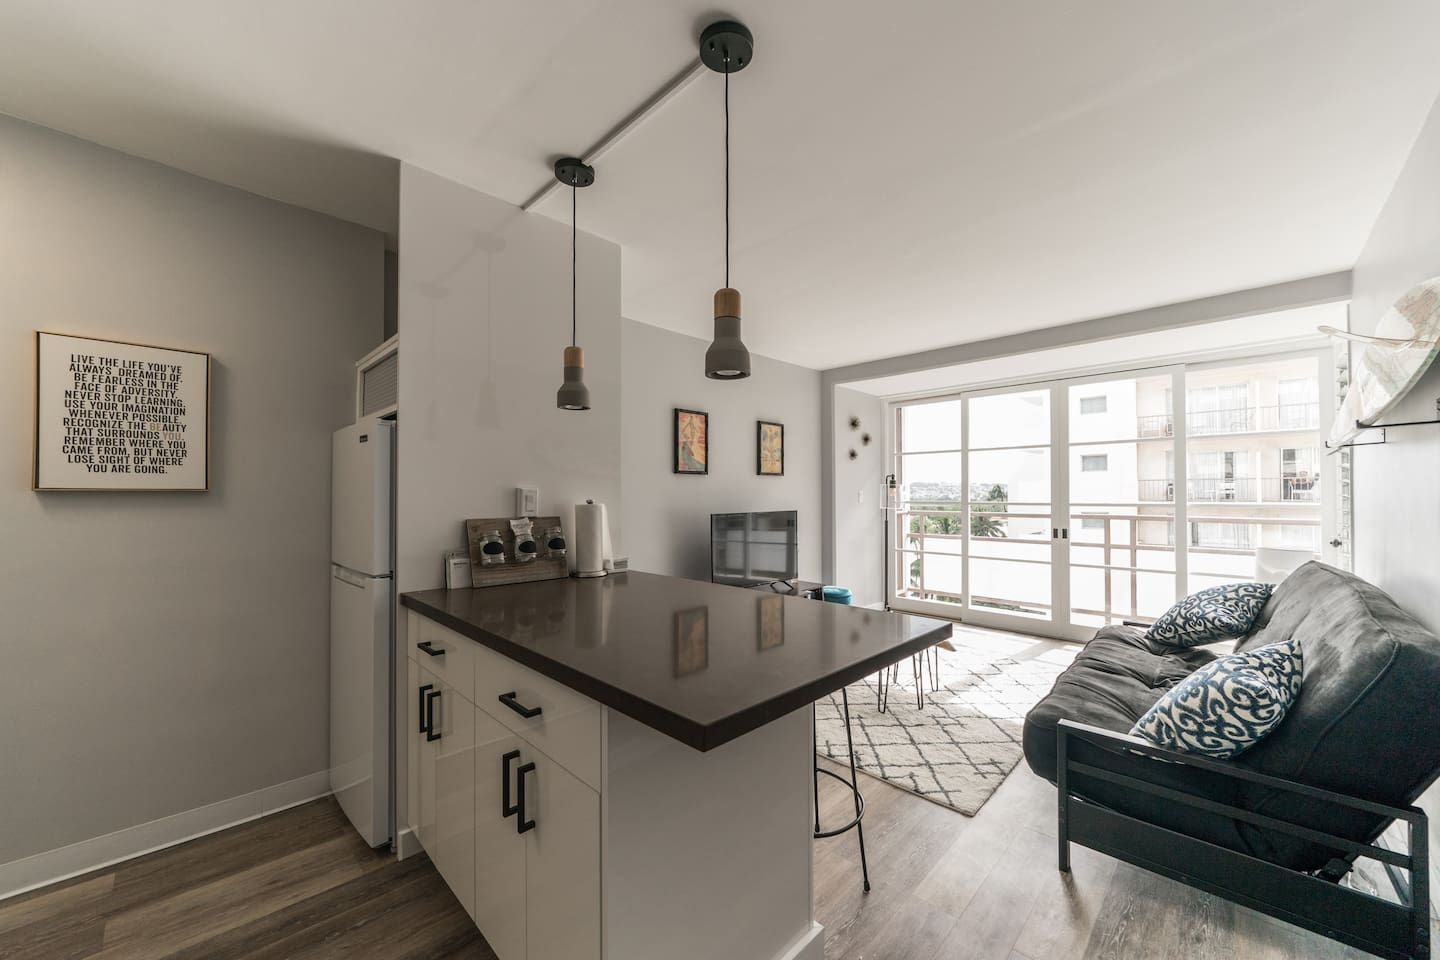 Brand new Apt.  Gorgeous updated kitchen, living room and one bedroom.  All glass windows, amazing light.  Easy living.  Couch folds out, queen bed in the room and another fold out cushion in the closet.